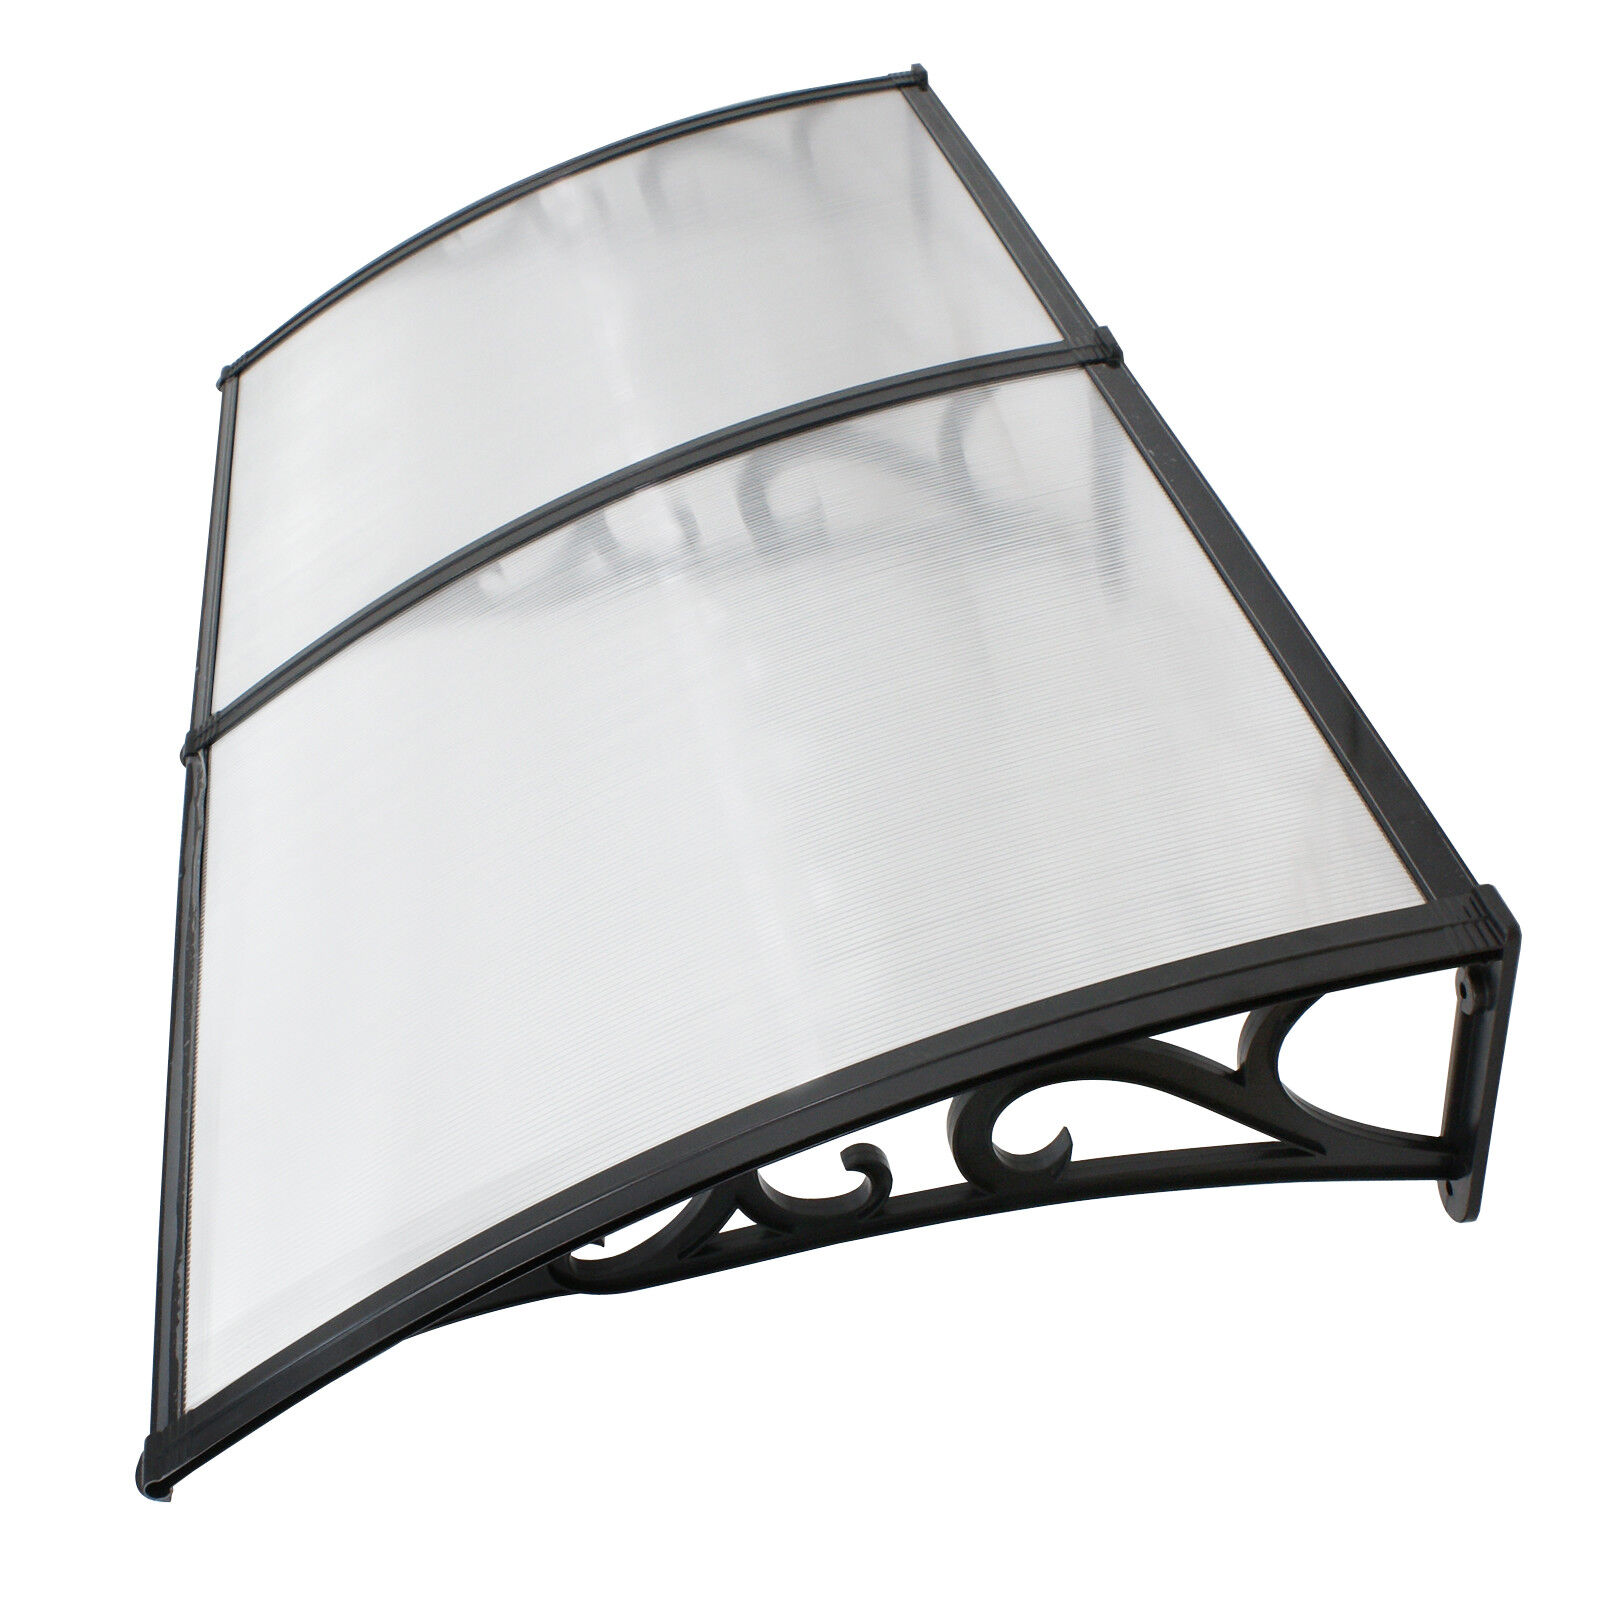 2X Door Window Outdoor Awning Canopy Patio Cover UV Rain Snow Protection 40″x80″ Awning & Canopy Parts